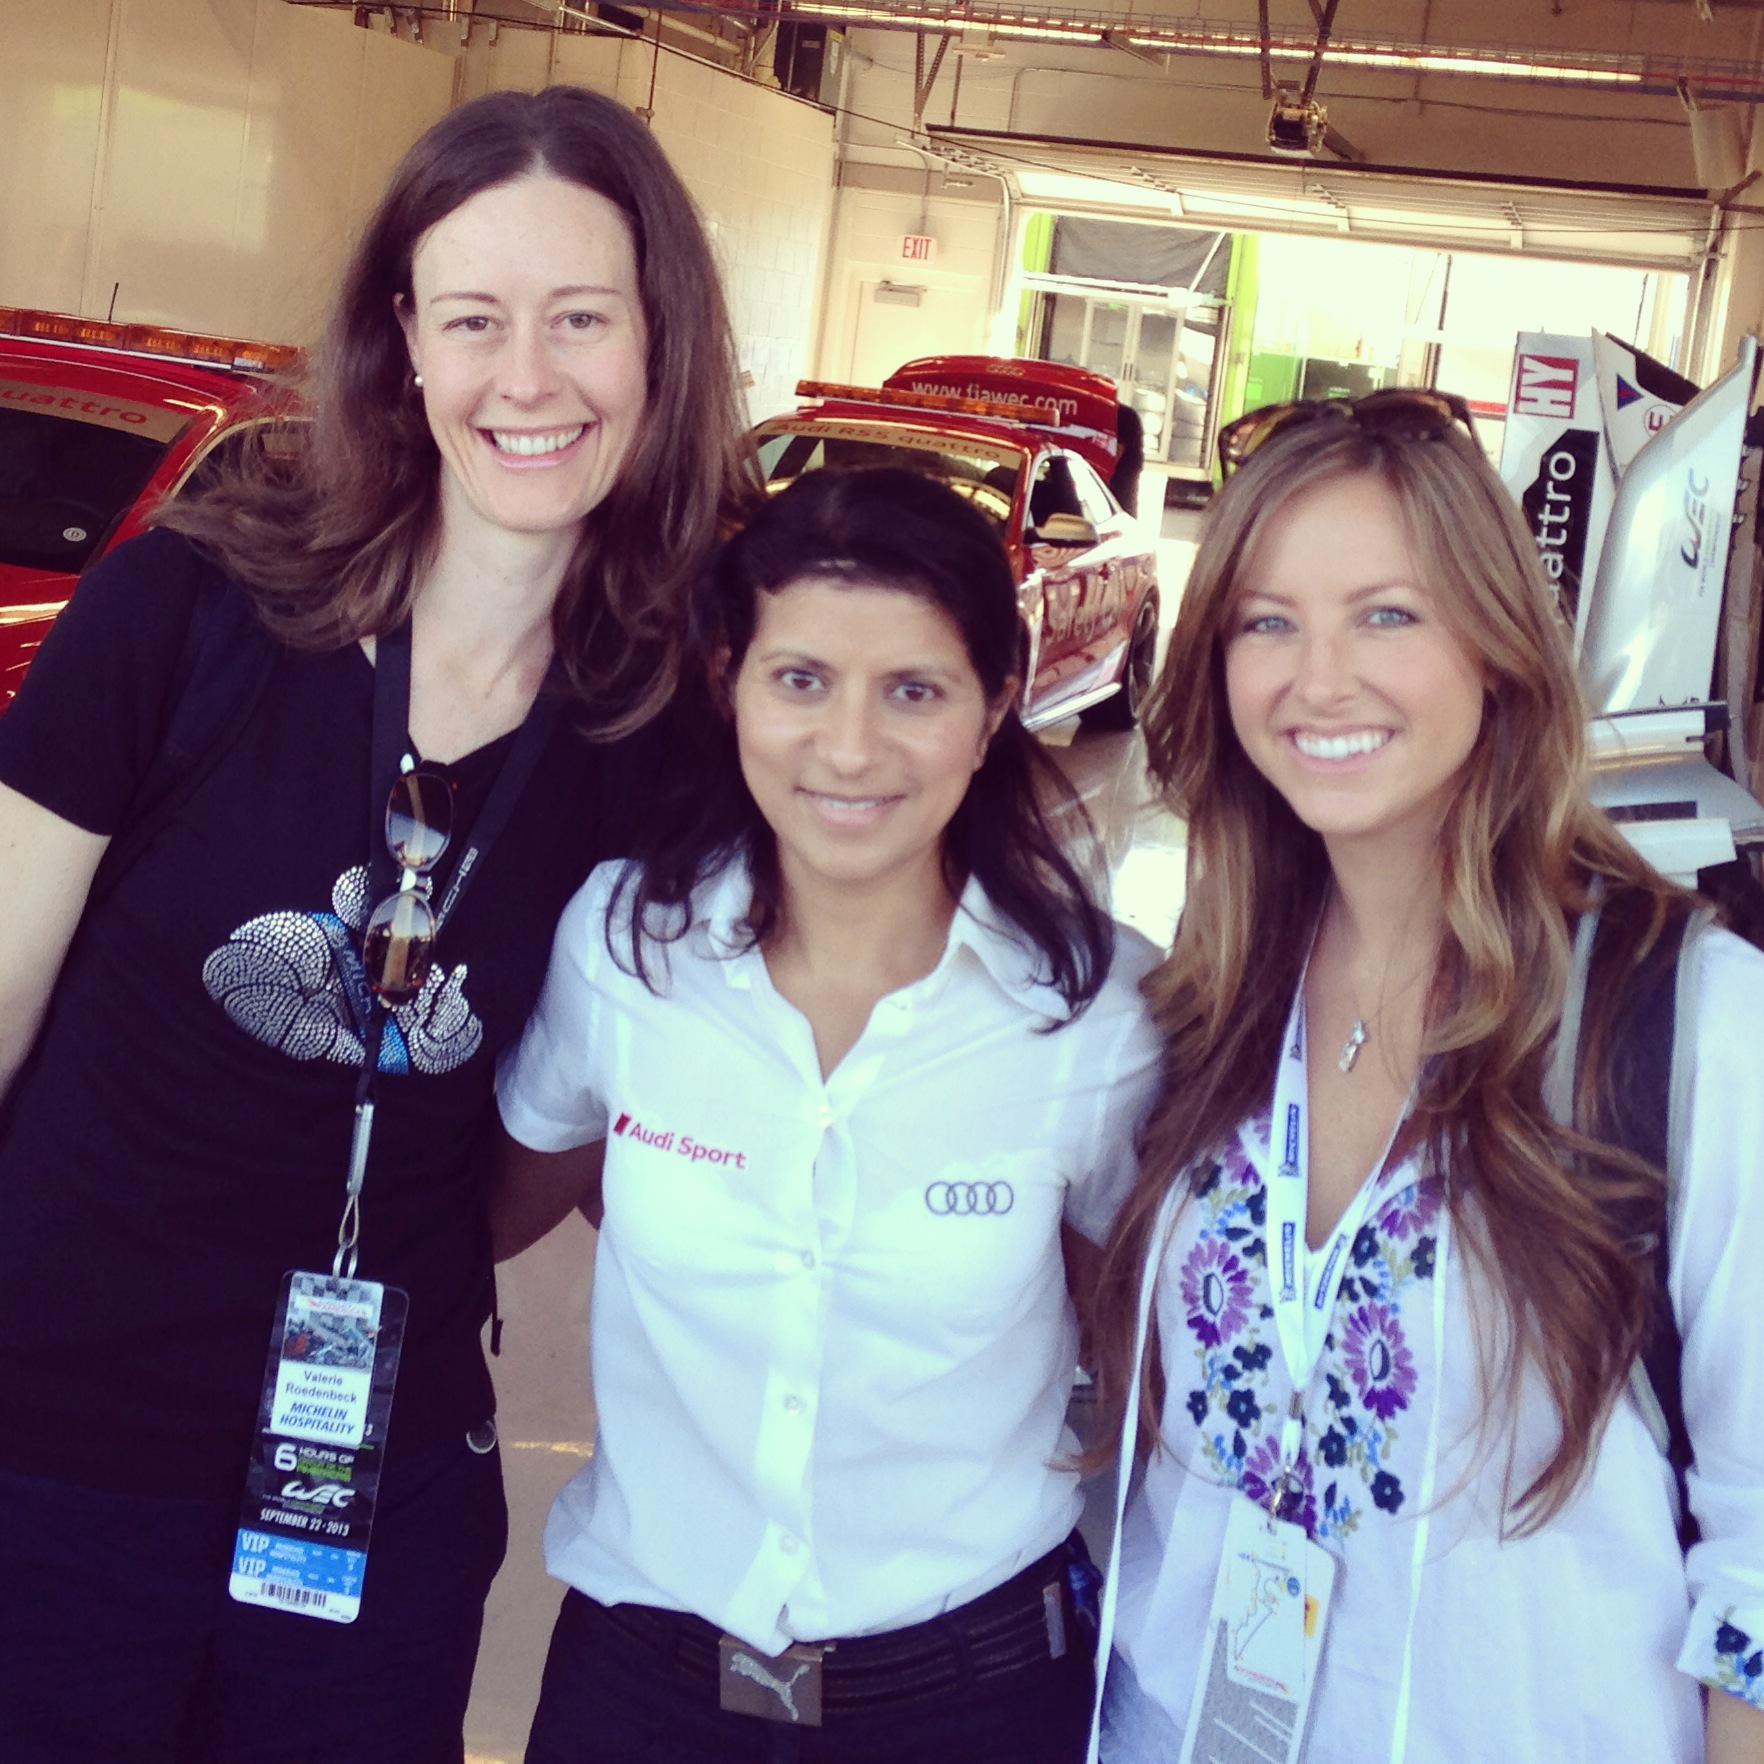 Audi Sport's Leena Gade takes a moment to chat with APEX members